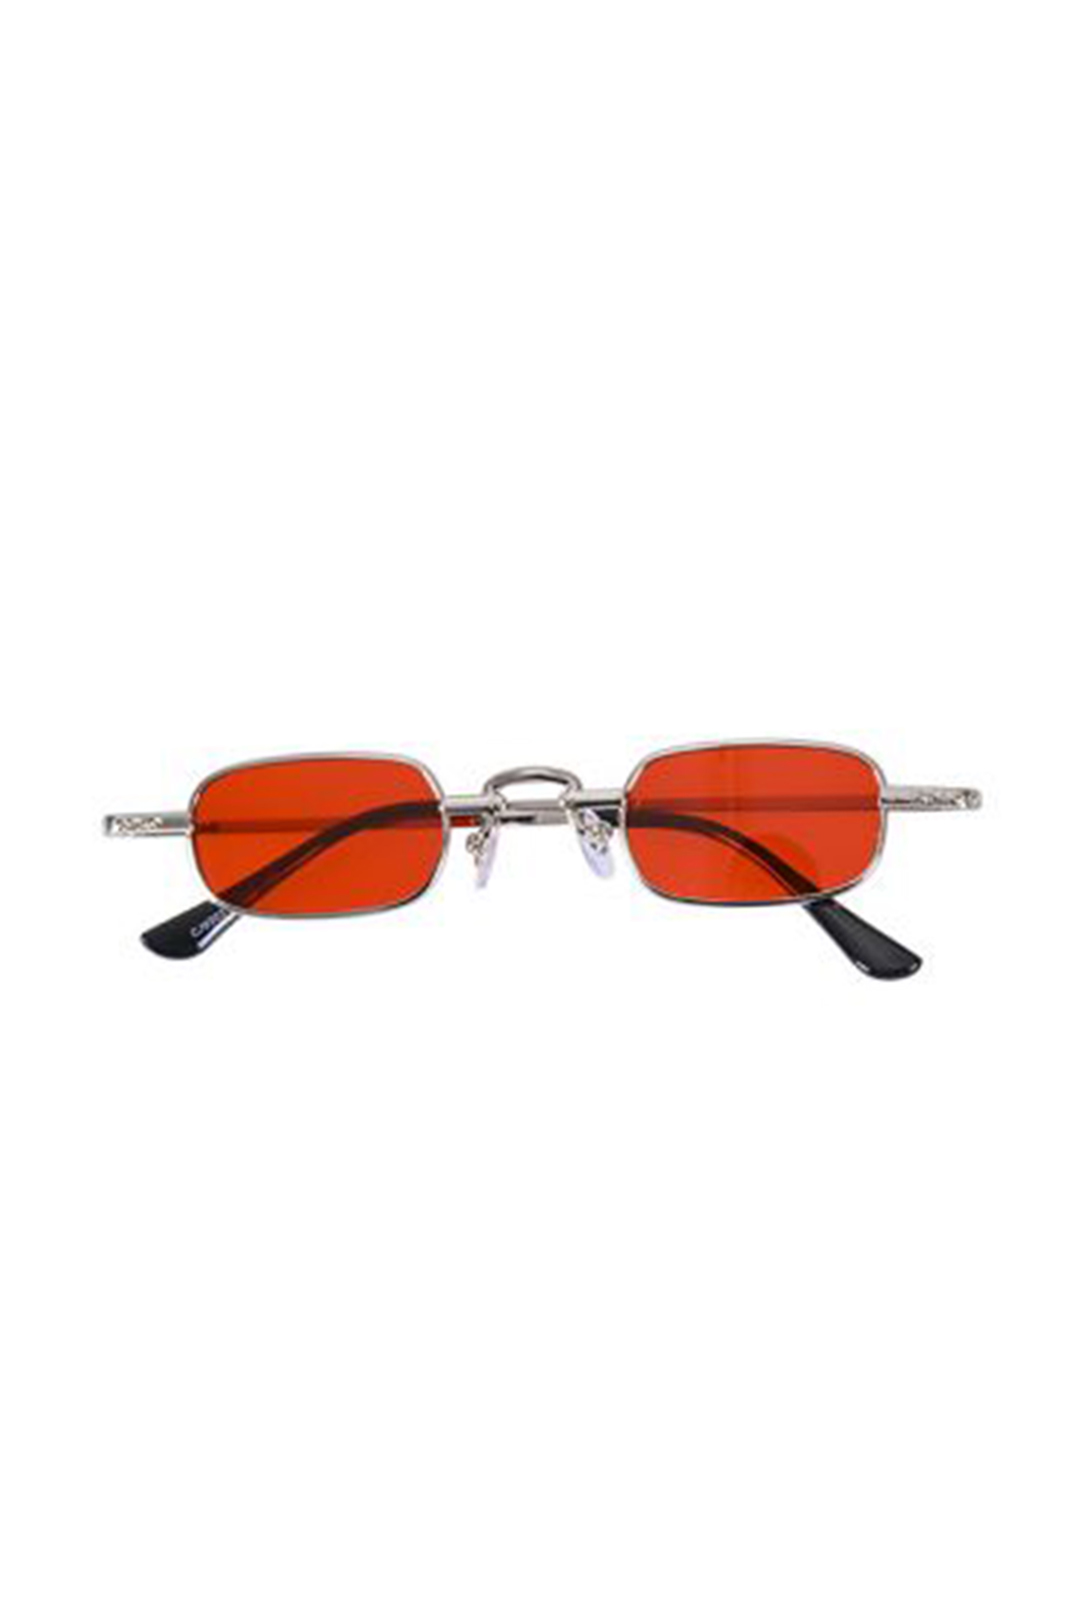 Sunglasses Square Red